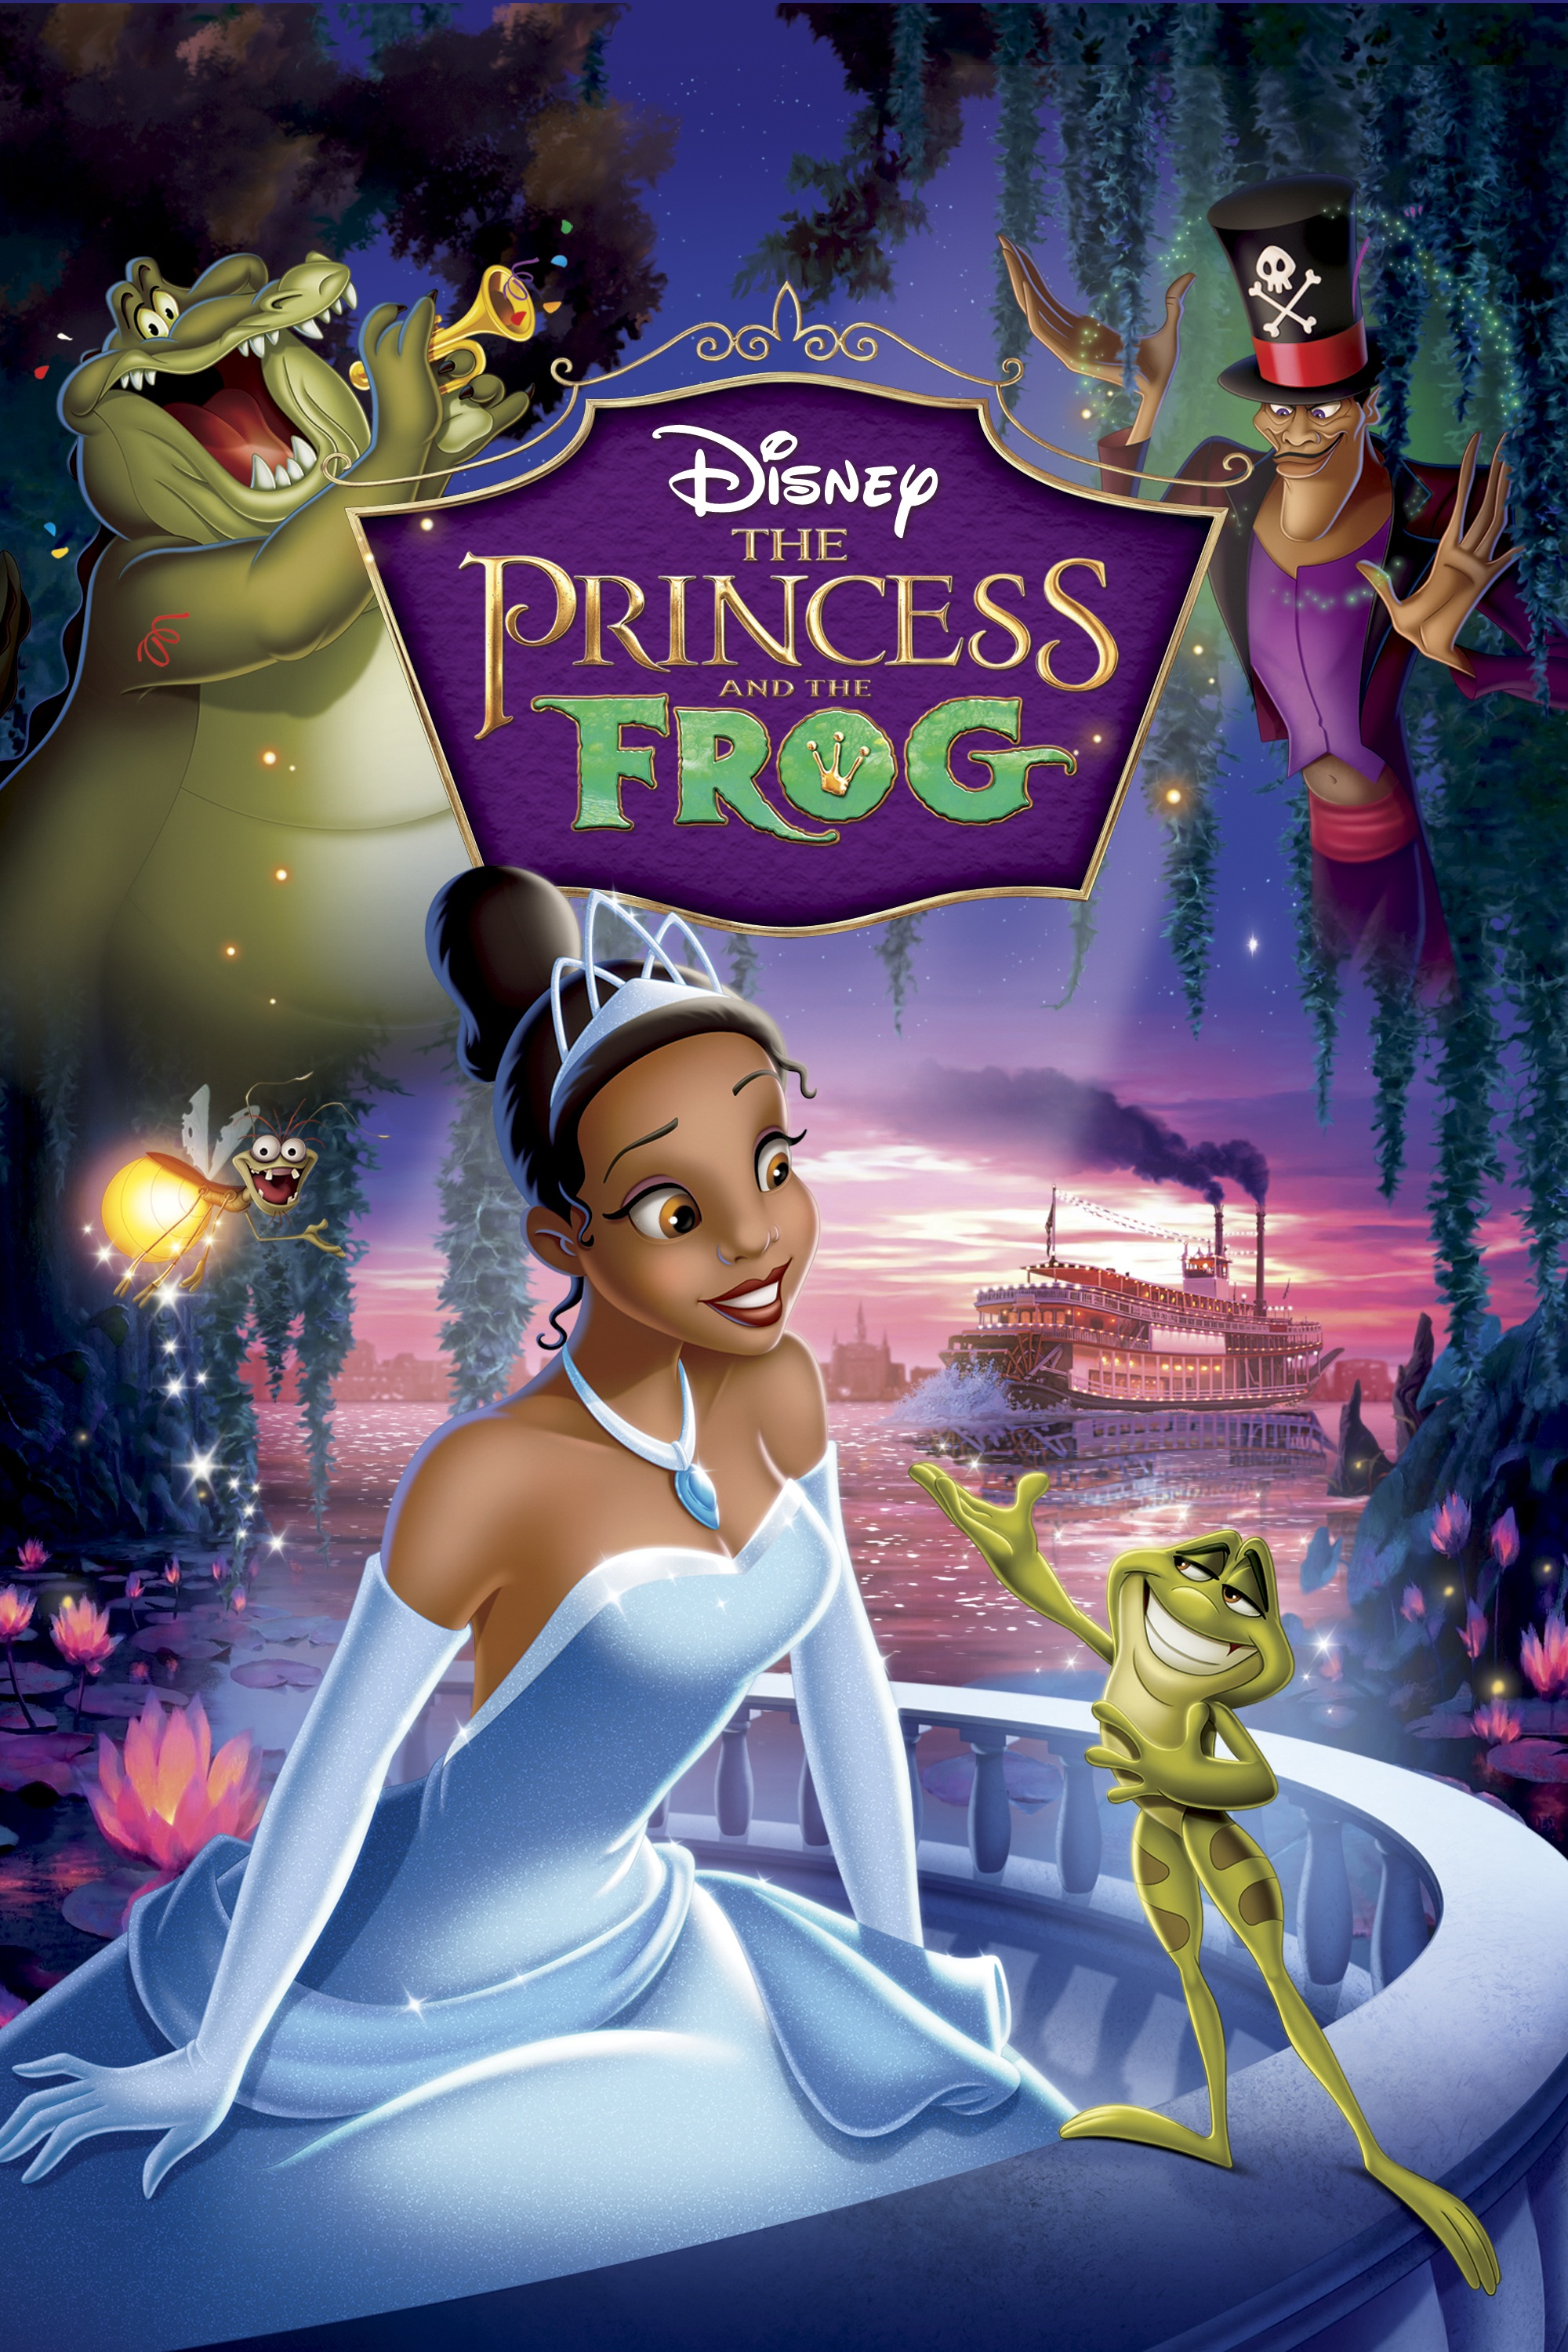 Image result for the princess and the frog movie poster